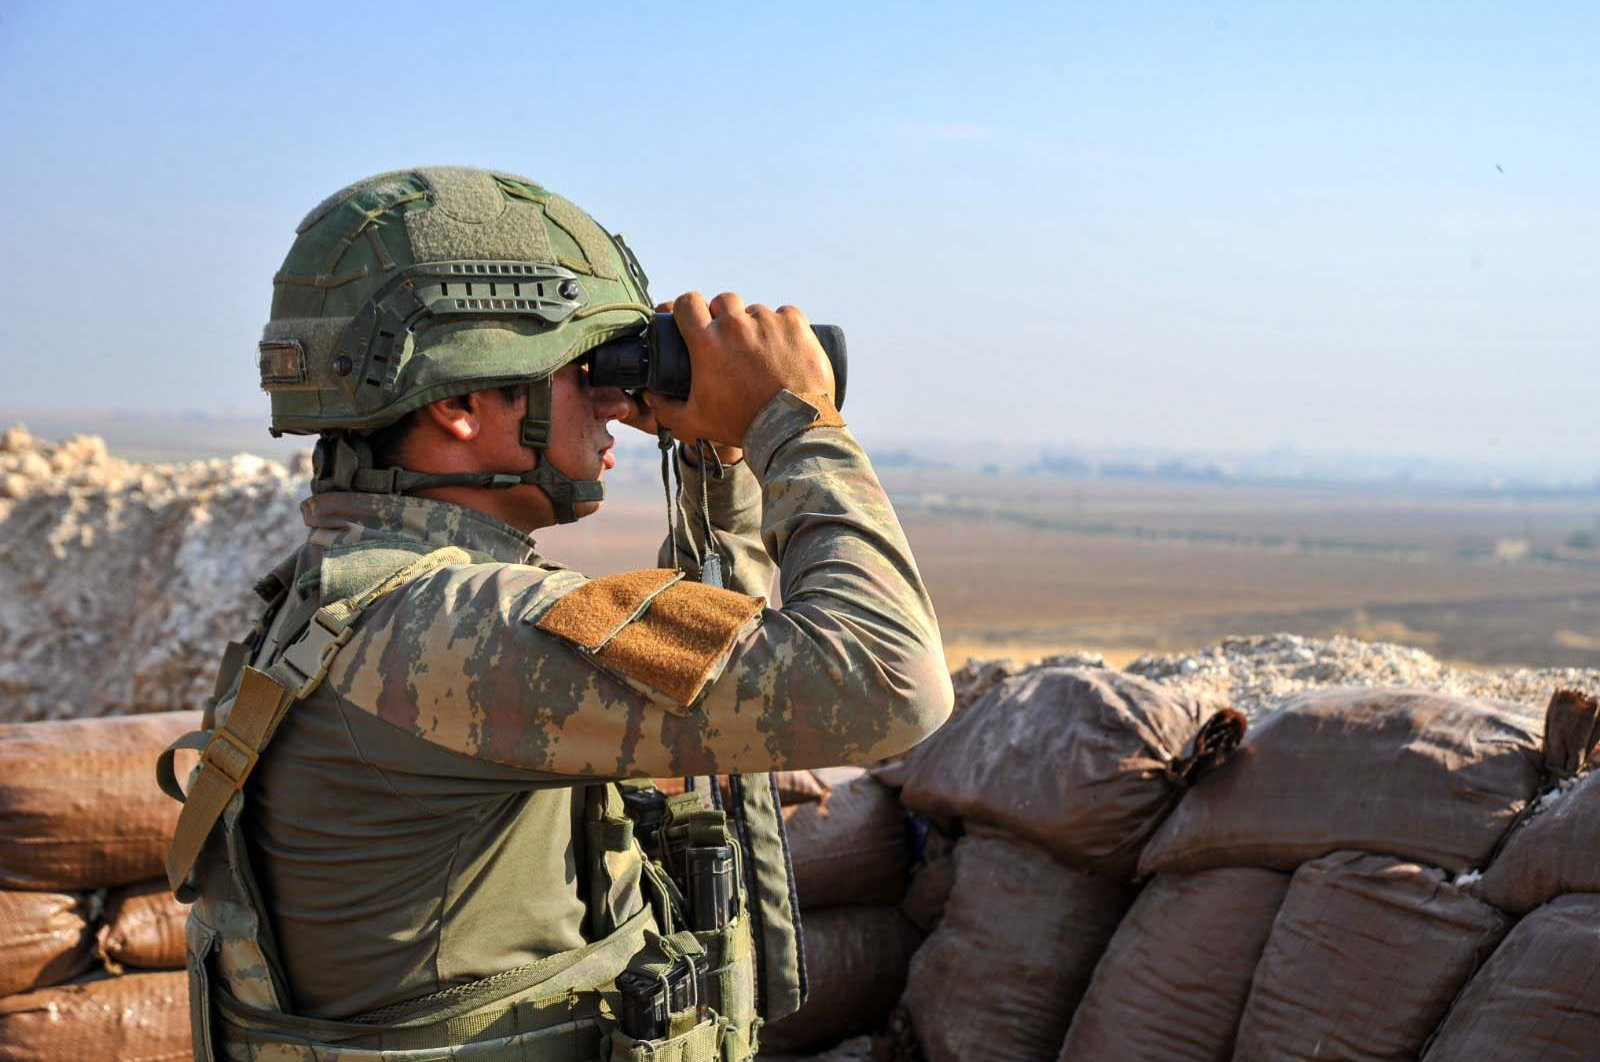 Turkey launched Operation Peace Spring, the third in a series of cross-border anti-terror operations in northern Syria targeting terrorists affiliated with Daesh and the PKK's Syrian offshoot, the YPG, on Oct. 9, 2019. (DHA)